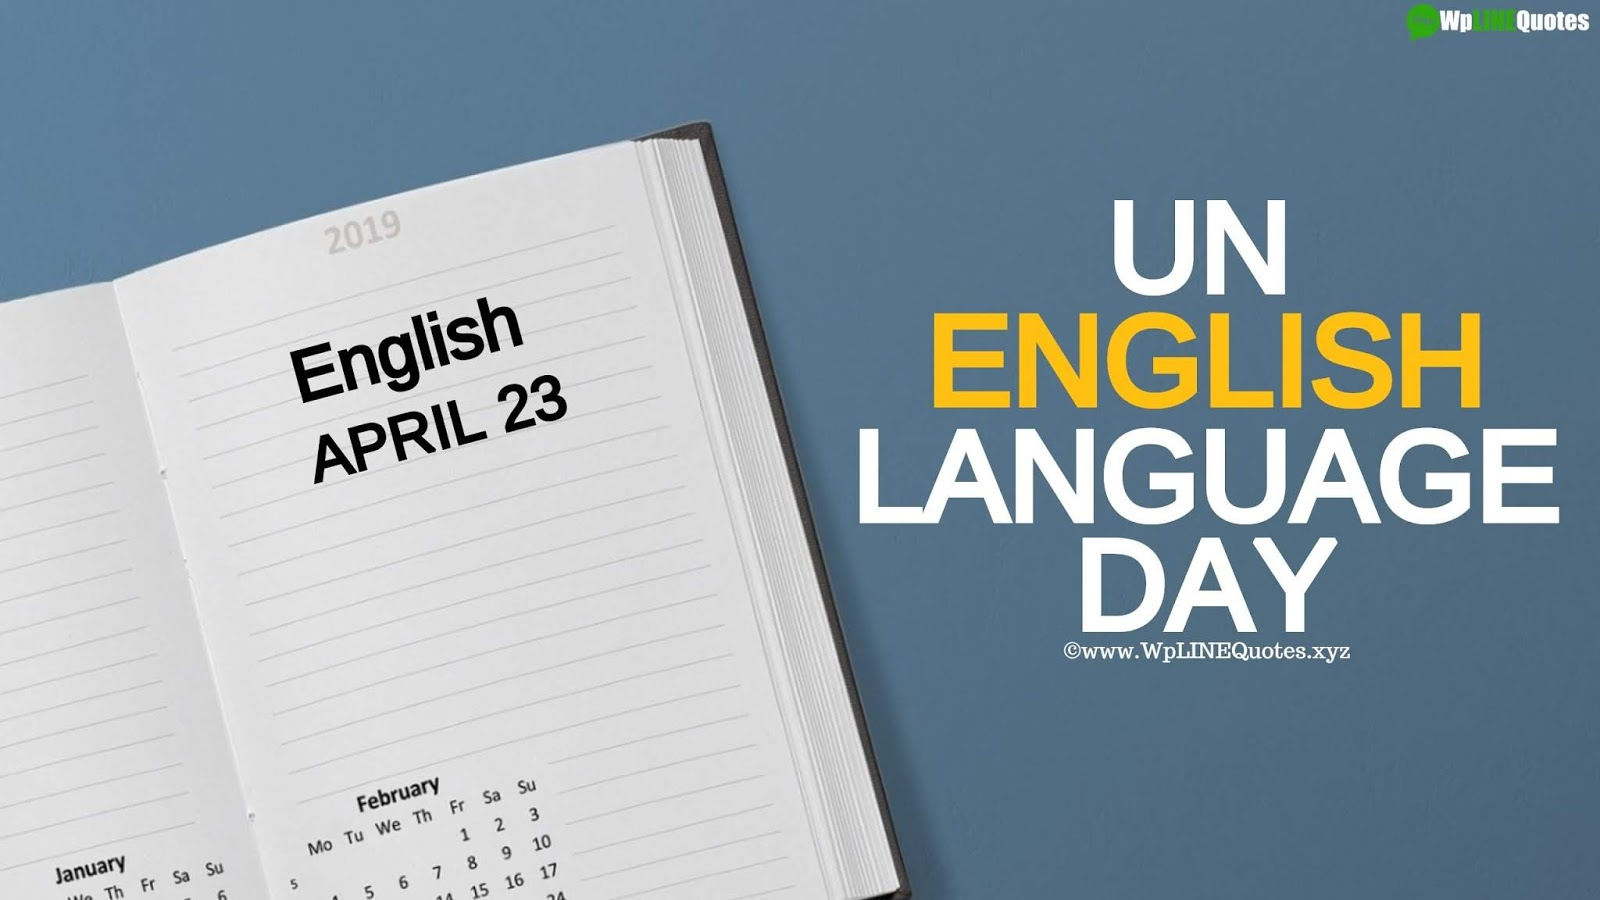 UN English Language Day Quotes, Wishes, Facts, Images, Poster, Pictures